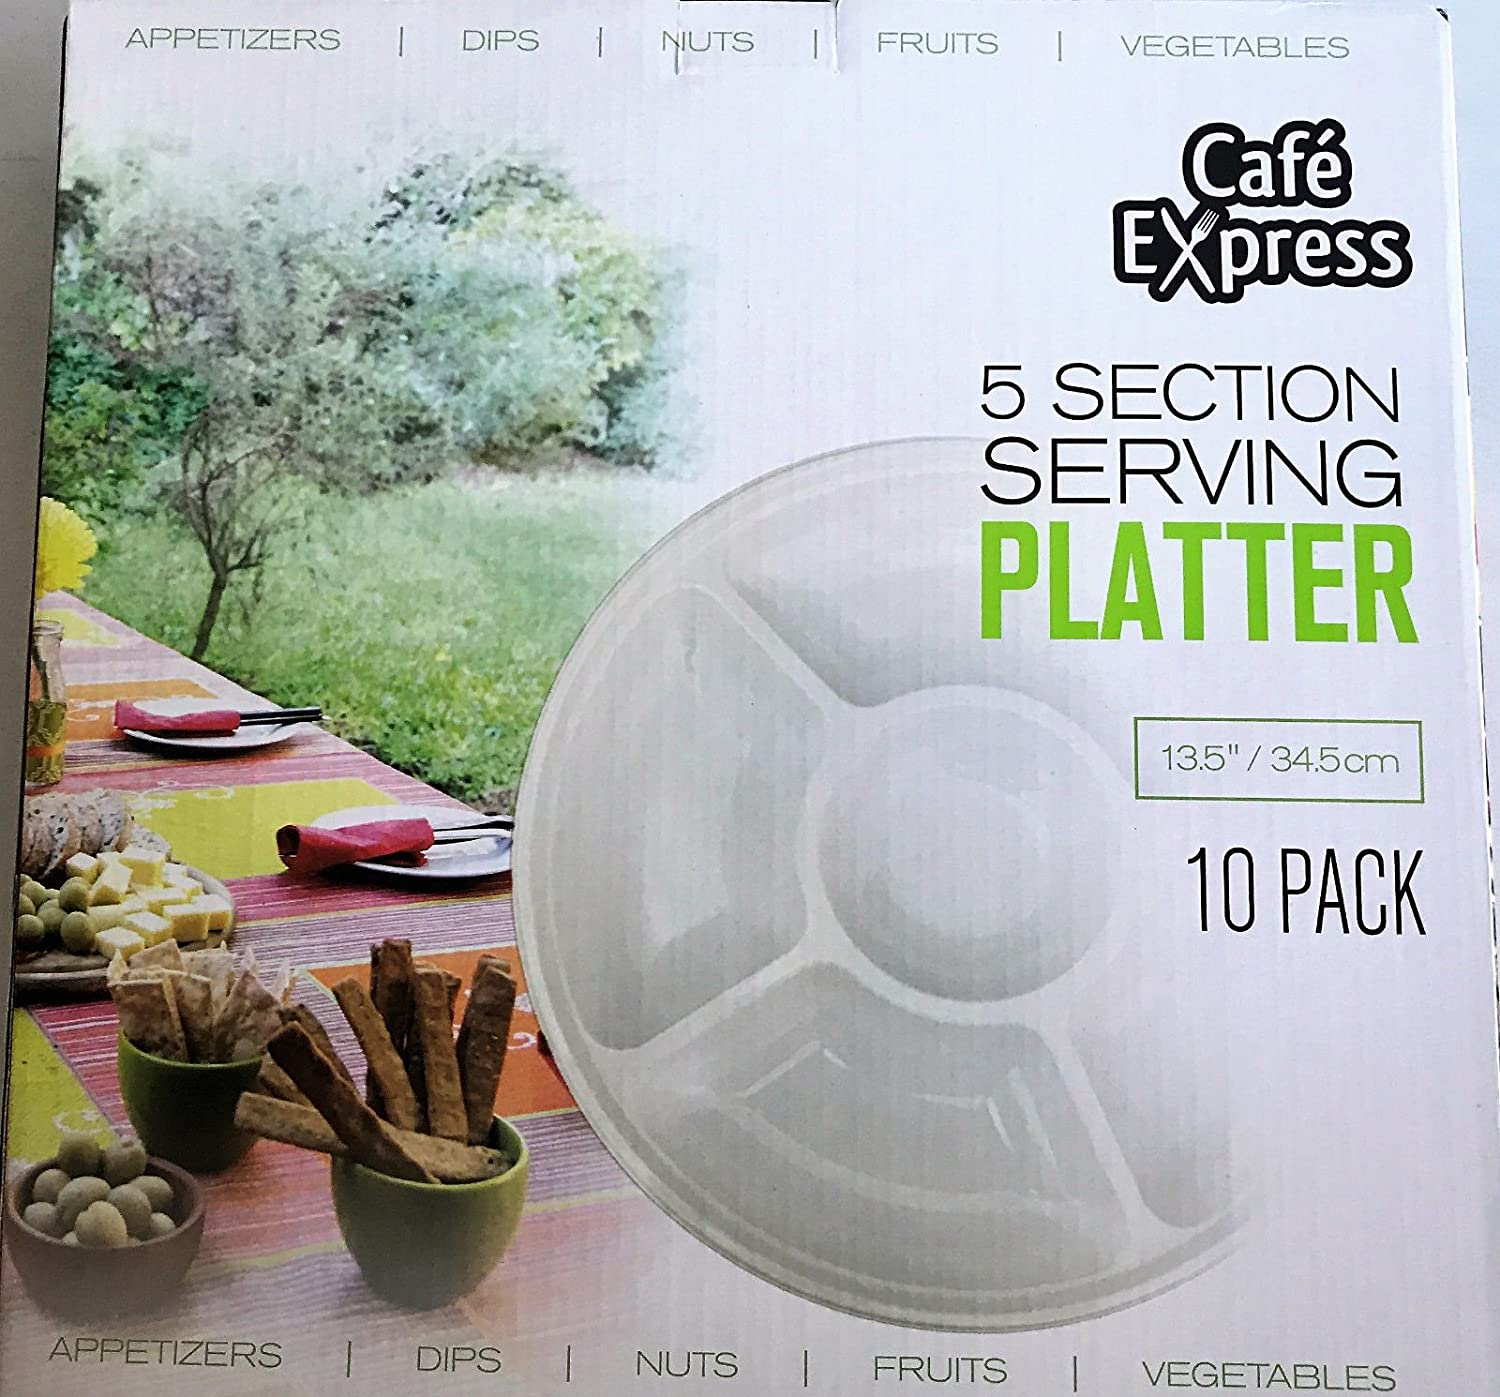 10 Piece Cafe Express 5 Section Serving Platter 34.5cm White Heavy Duty